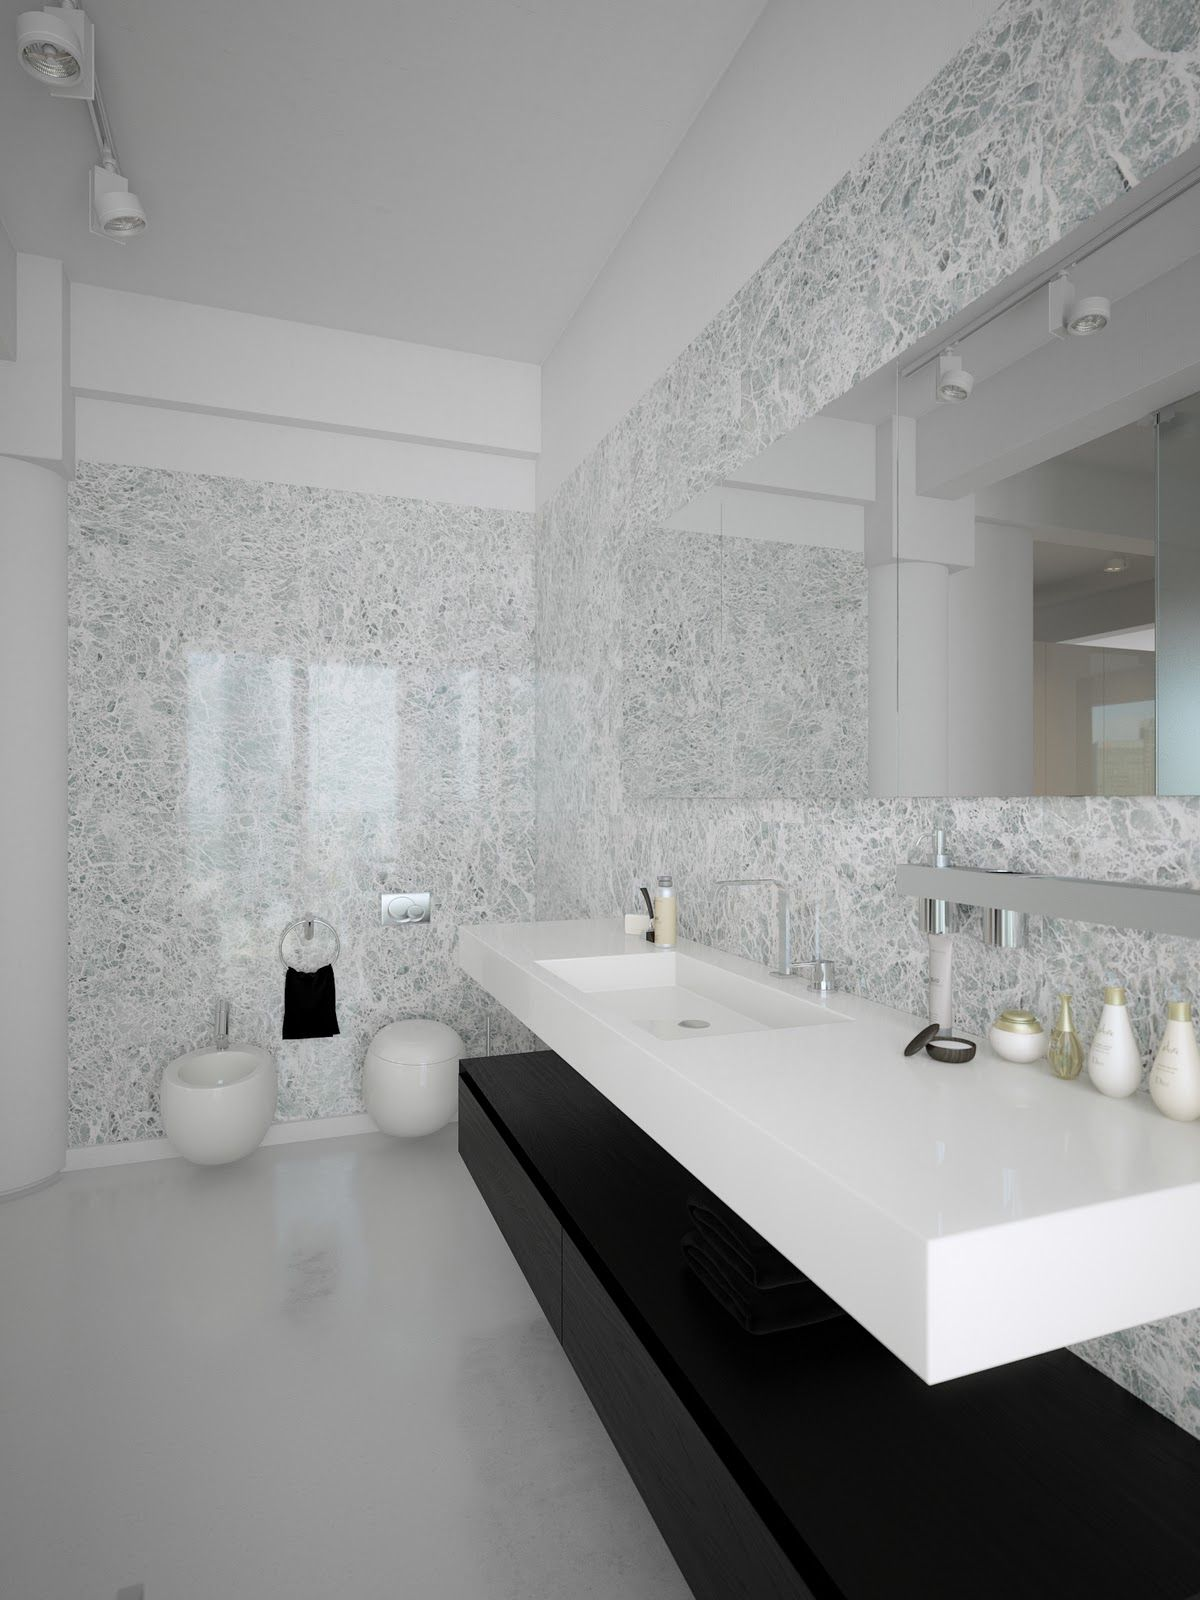 Coolest minimalist modern bathroom design contemporary for New style bathroom designs